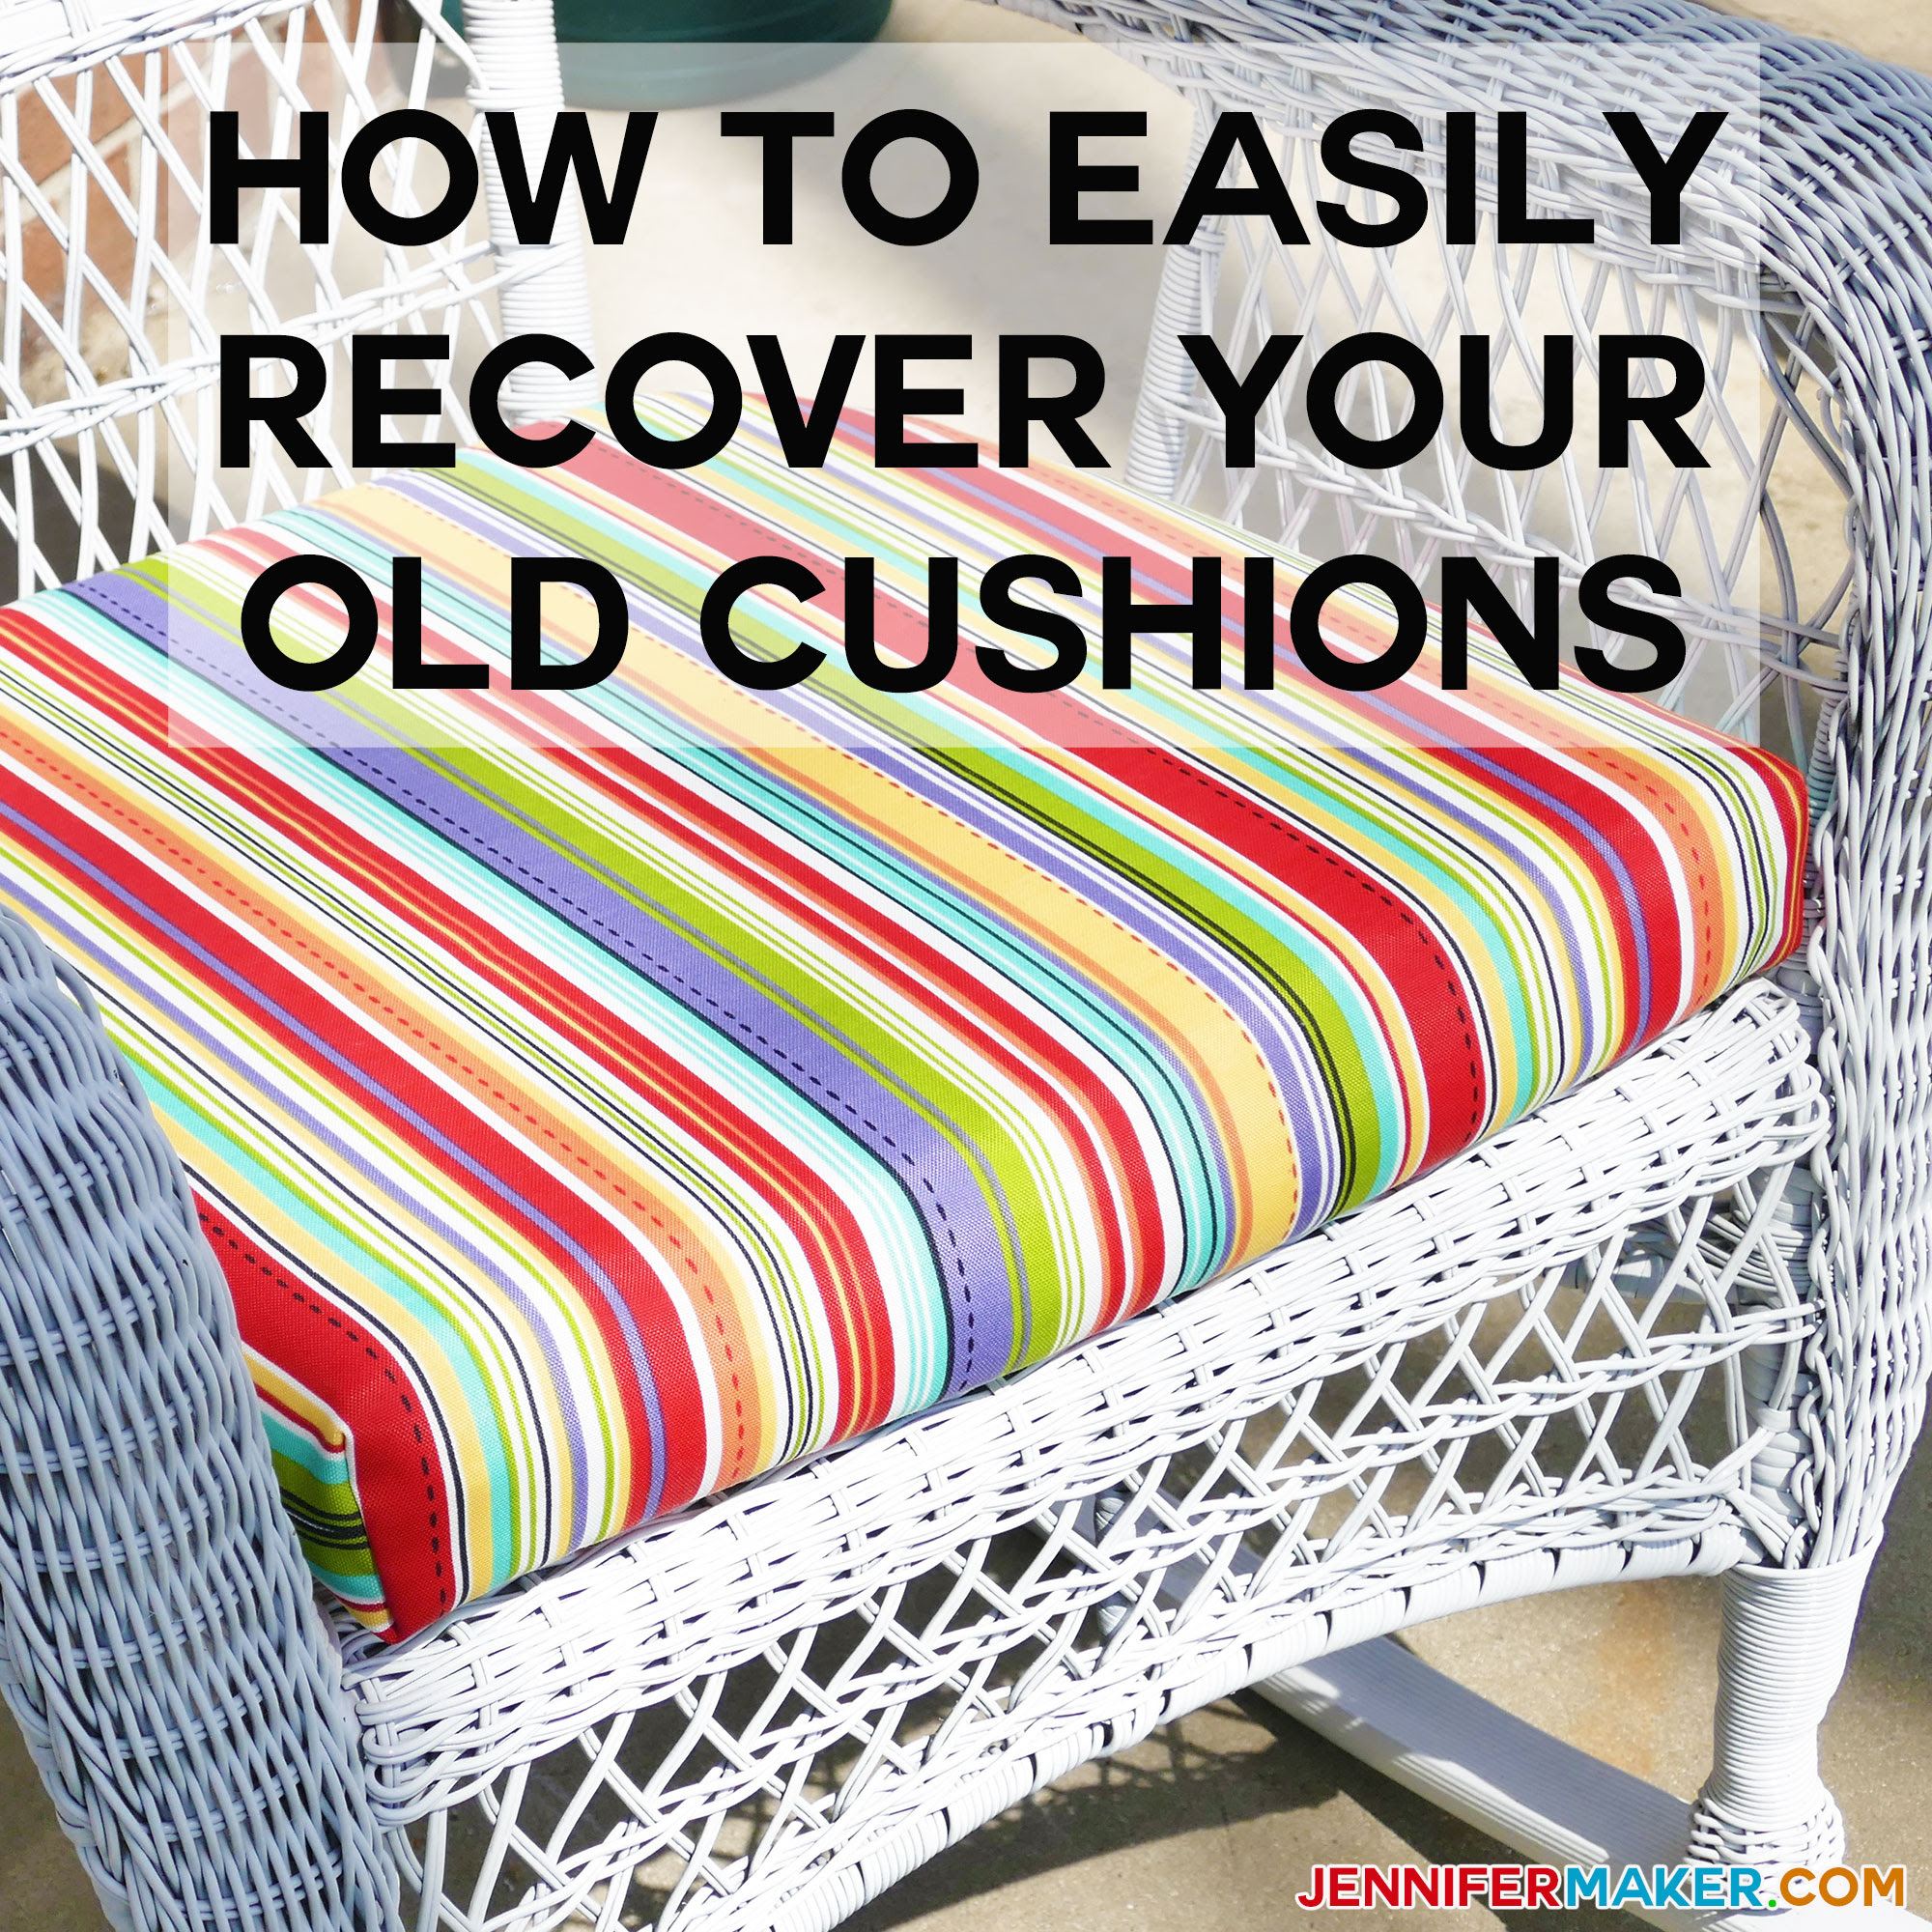 How to Recover Your Outdoor Cushions Quick & Easy ...